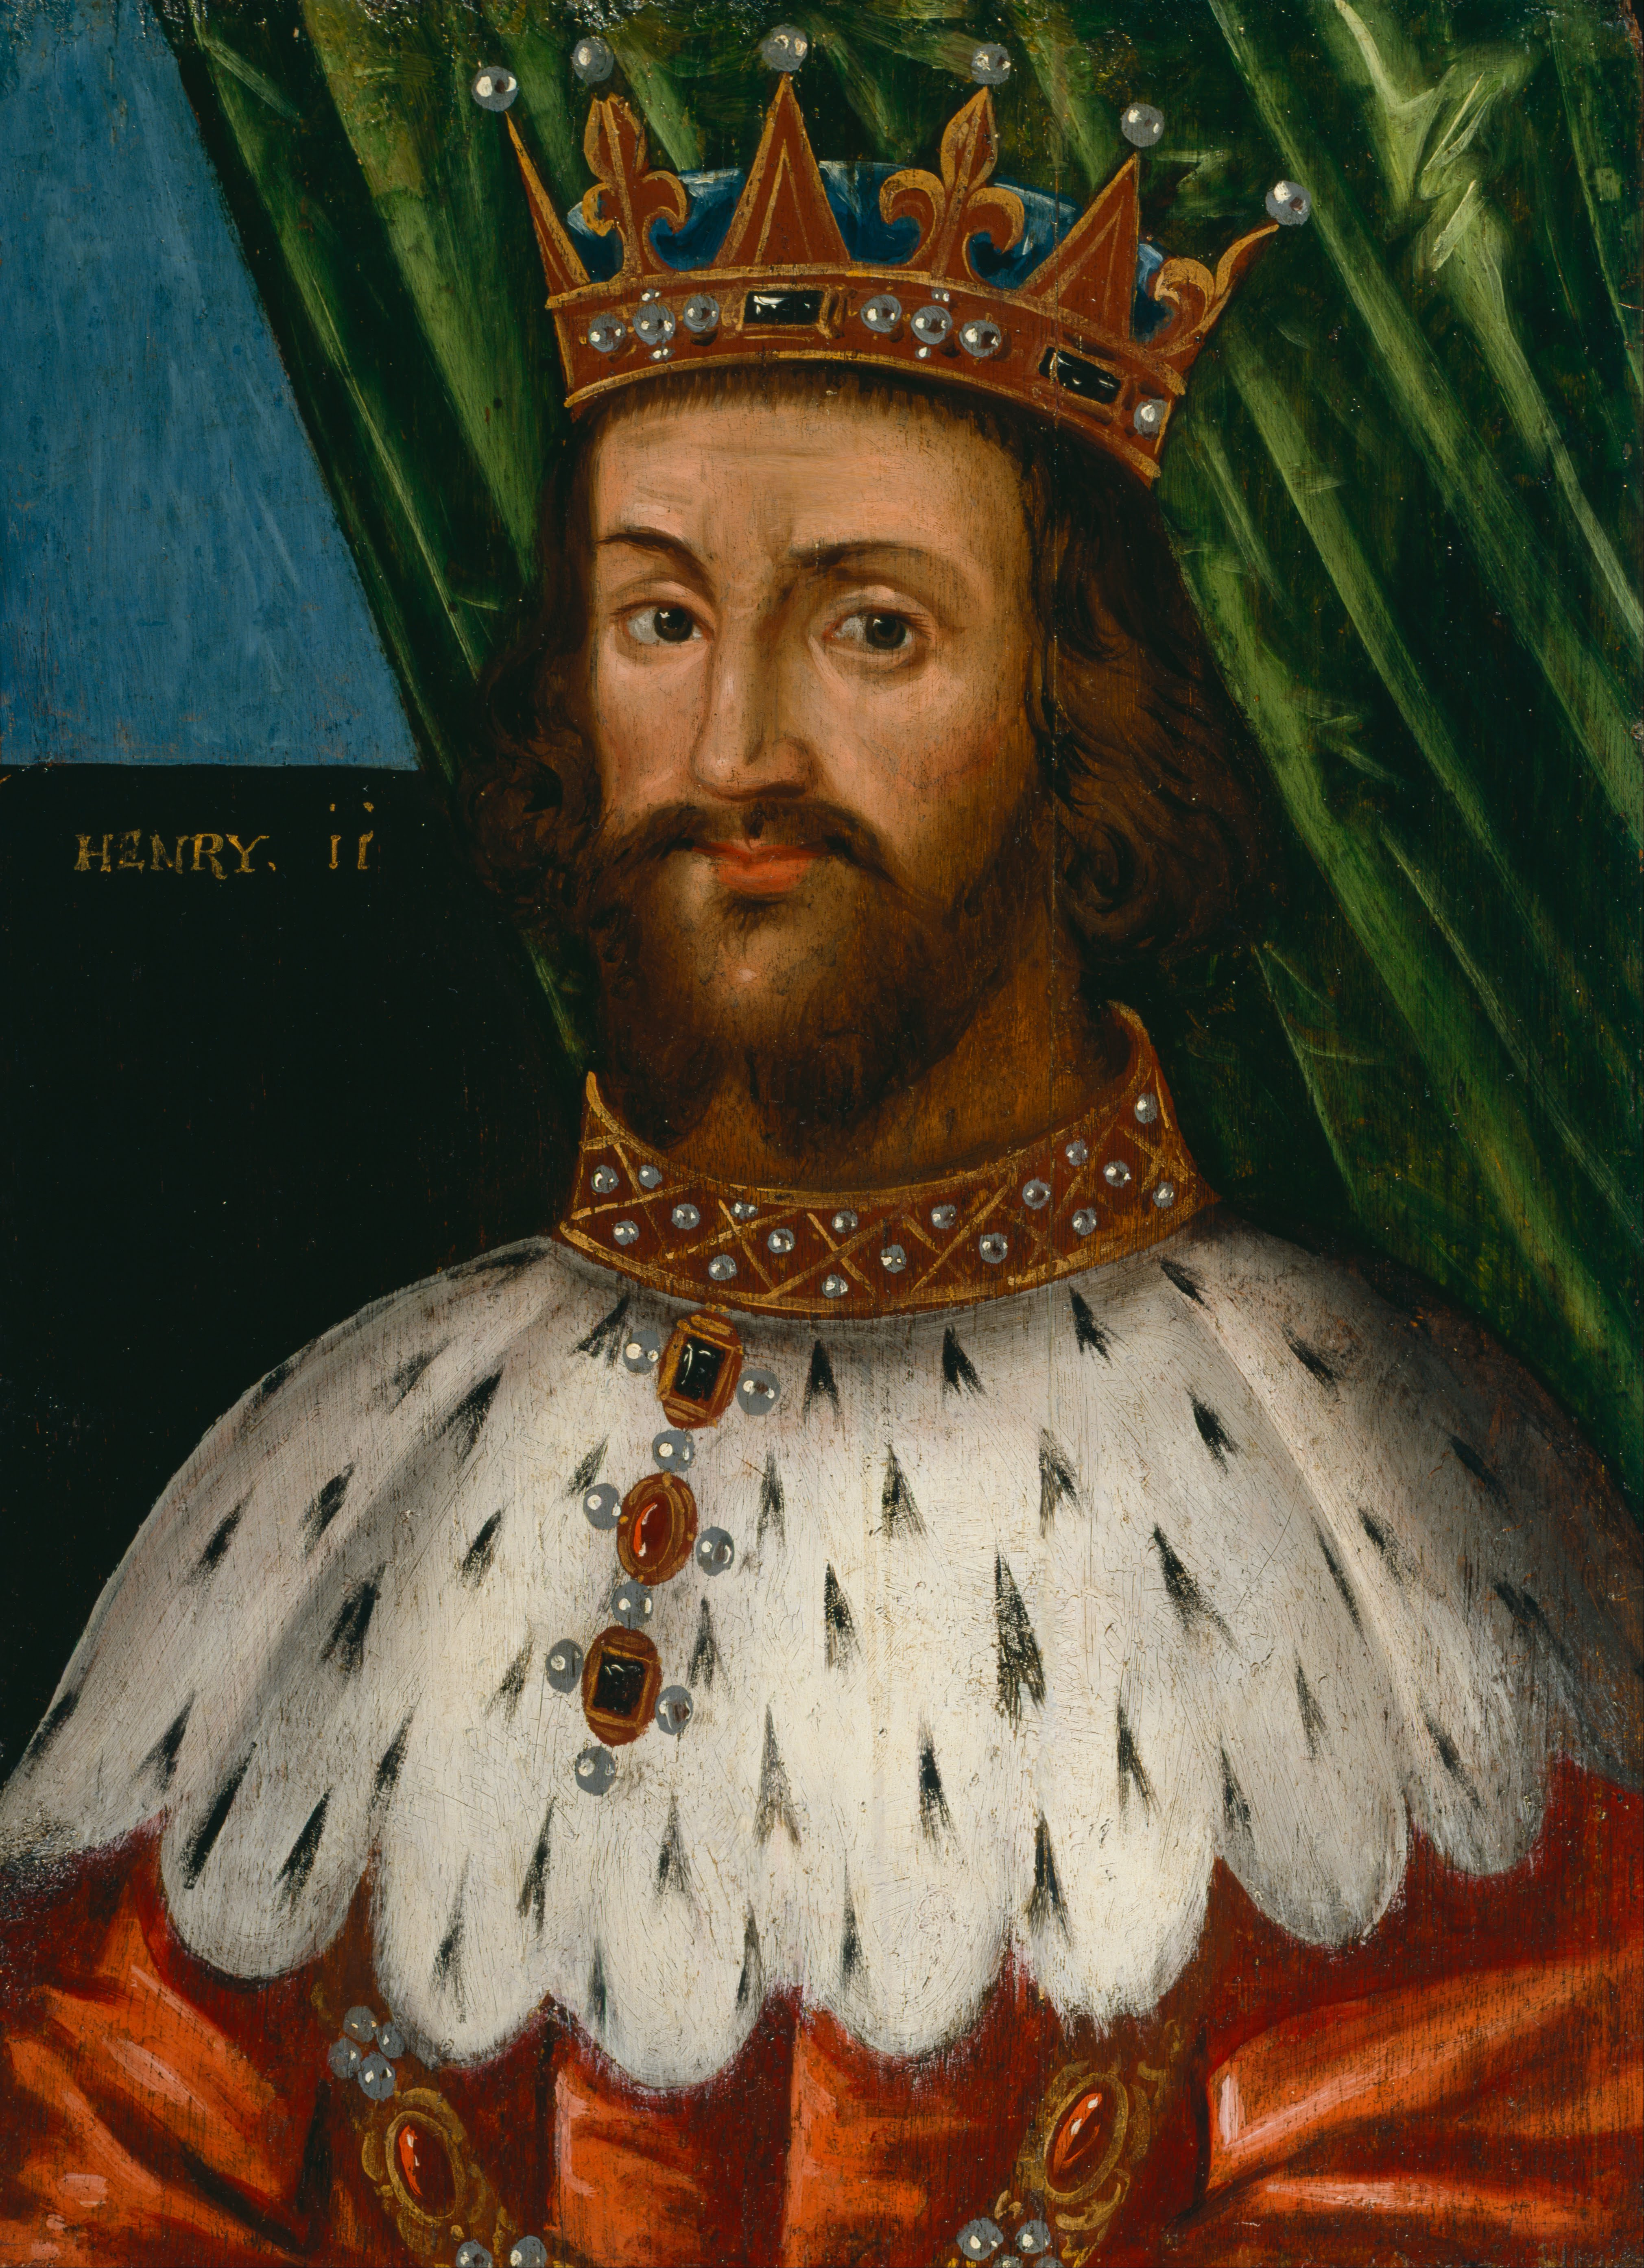 king henry ii Henry ii, king of england, lord of ireland, duke of normandy and aquitaine, count of anjou and maine, was born 5 march 1133 in le mans, france to geoffrey v, count of anjou and maine (1113-1151) and matilda of normandy (1102-1167) and died 6 july 1189 in chinon, france of unspecified causes.